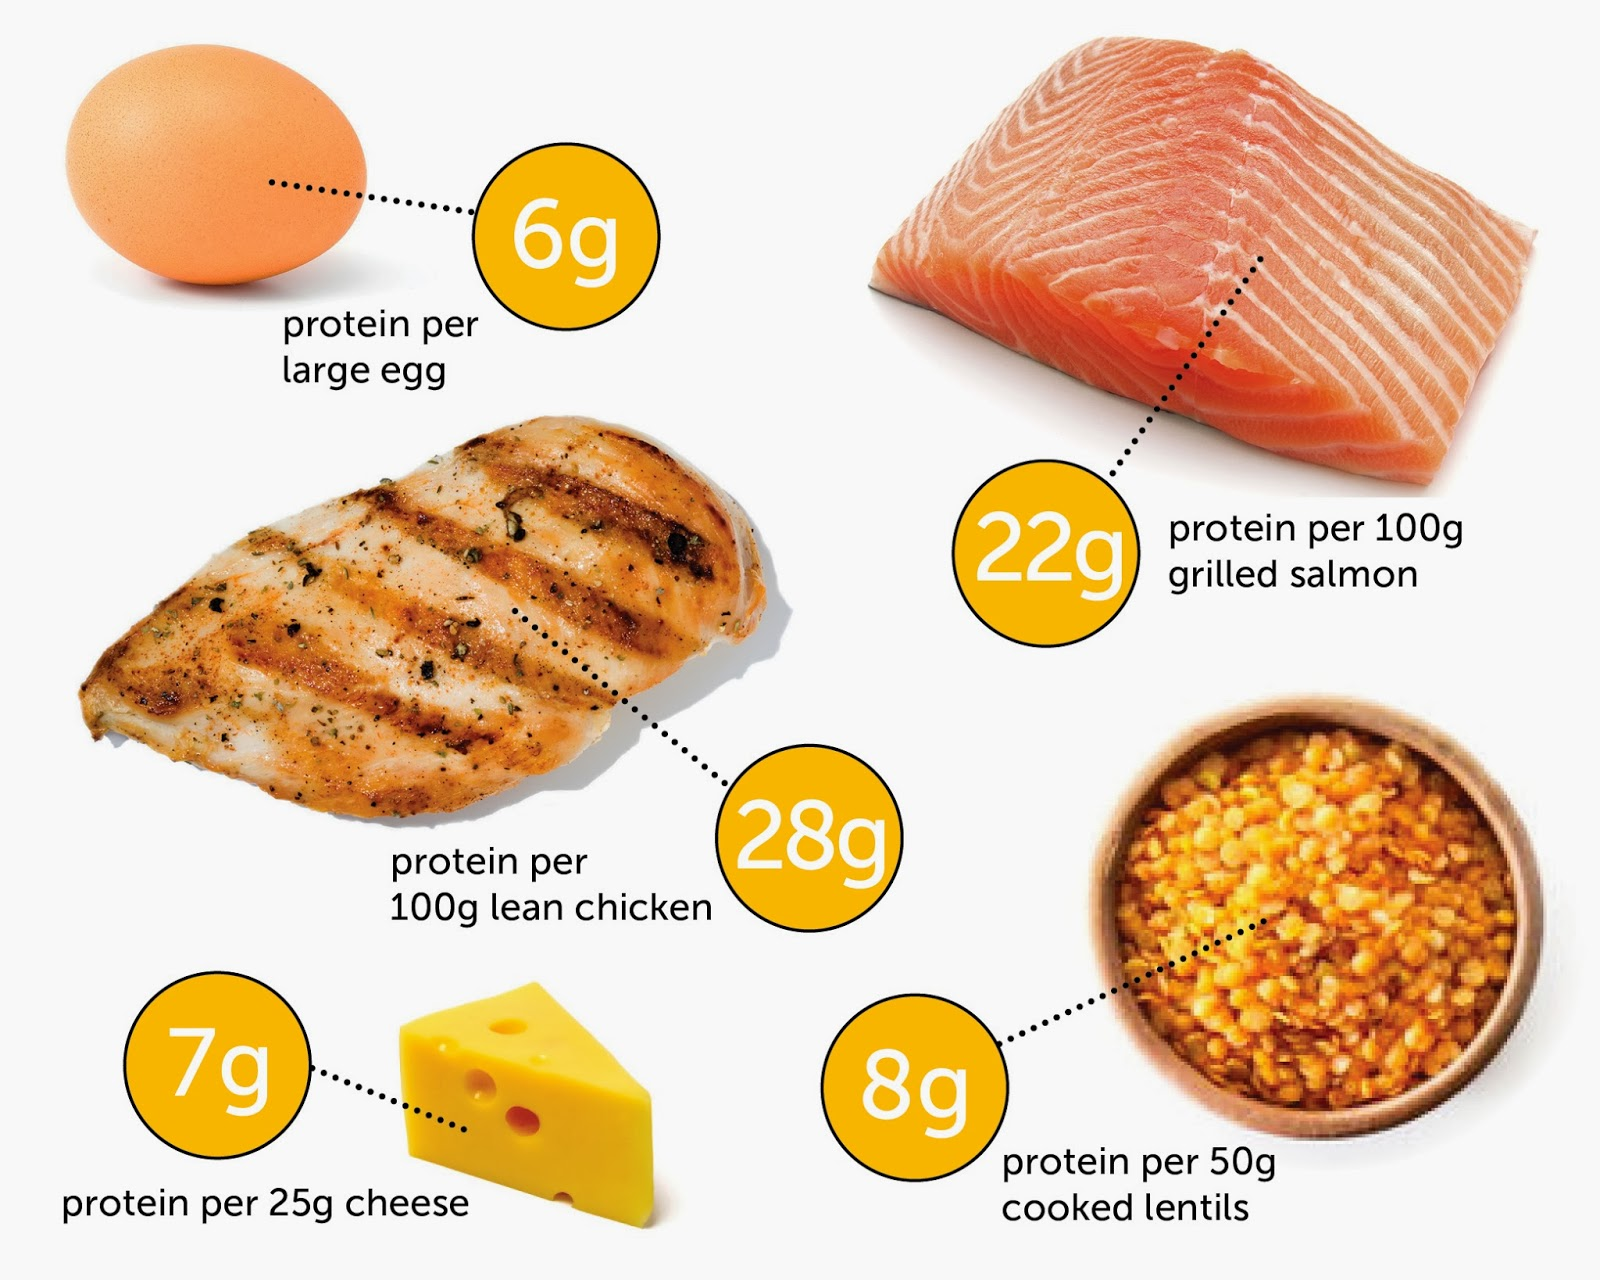 Foods Containing High Quality Protein